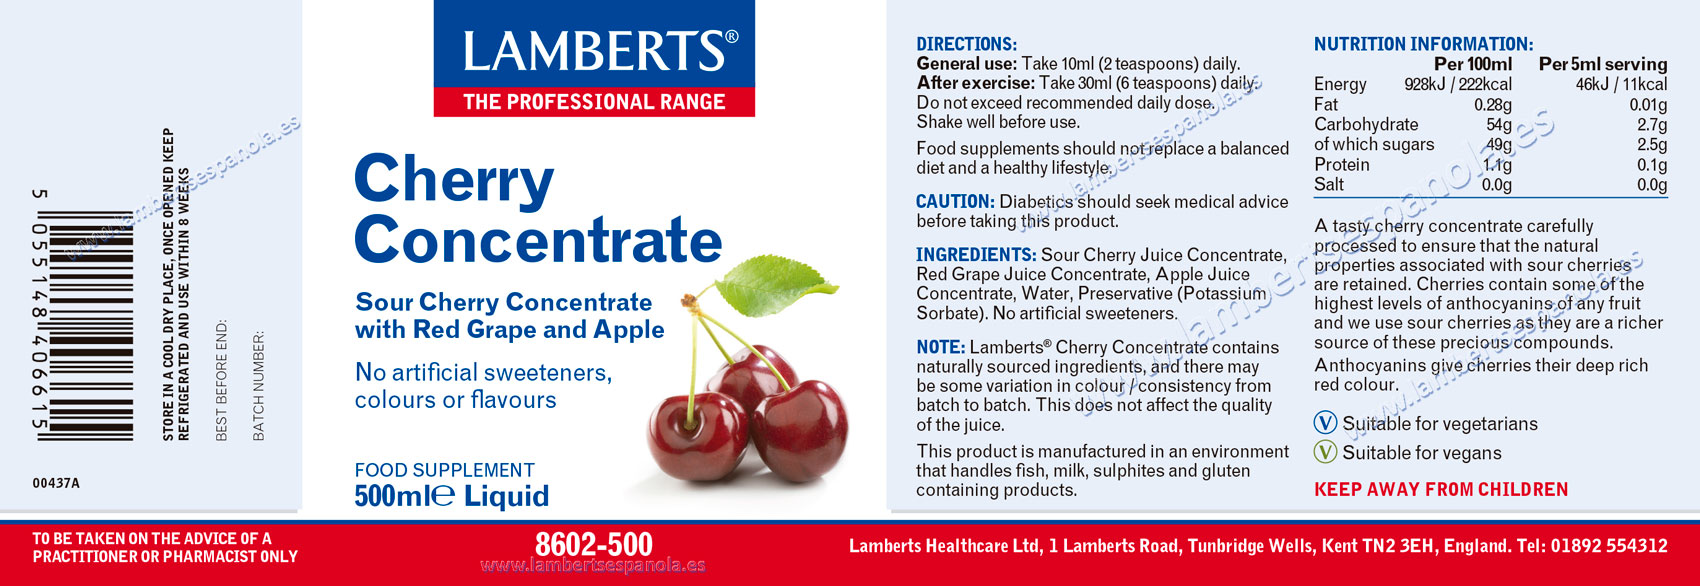 Cherry Concentrate properties. Lamberts